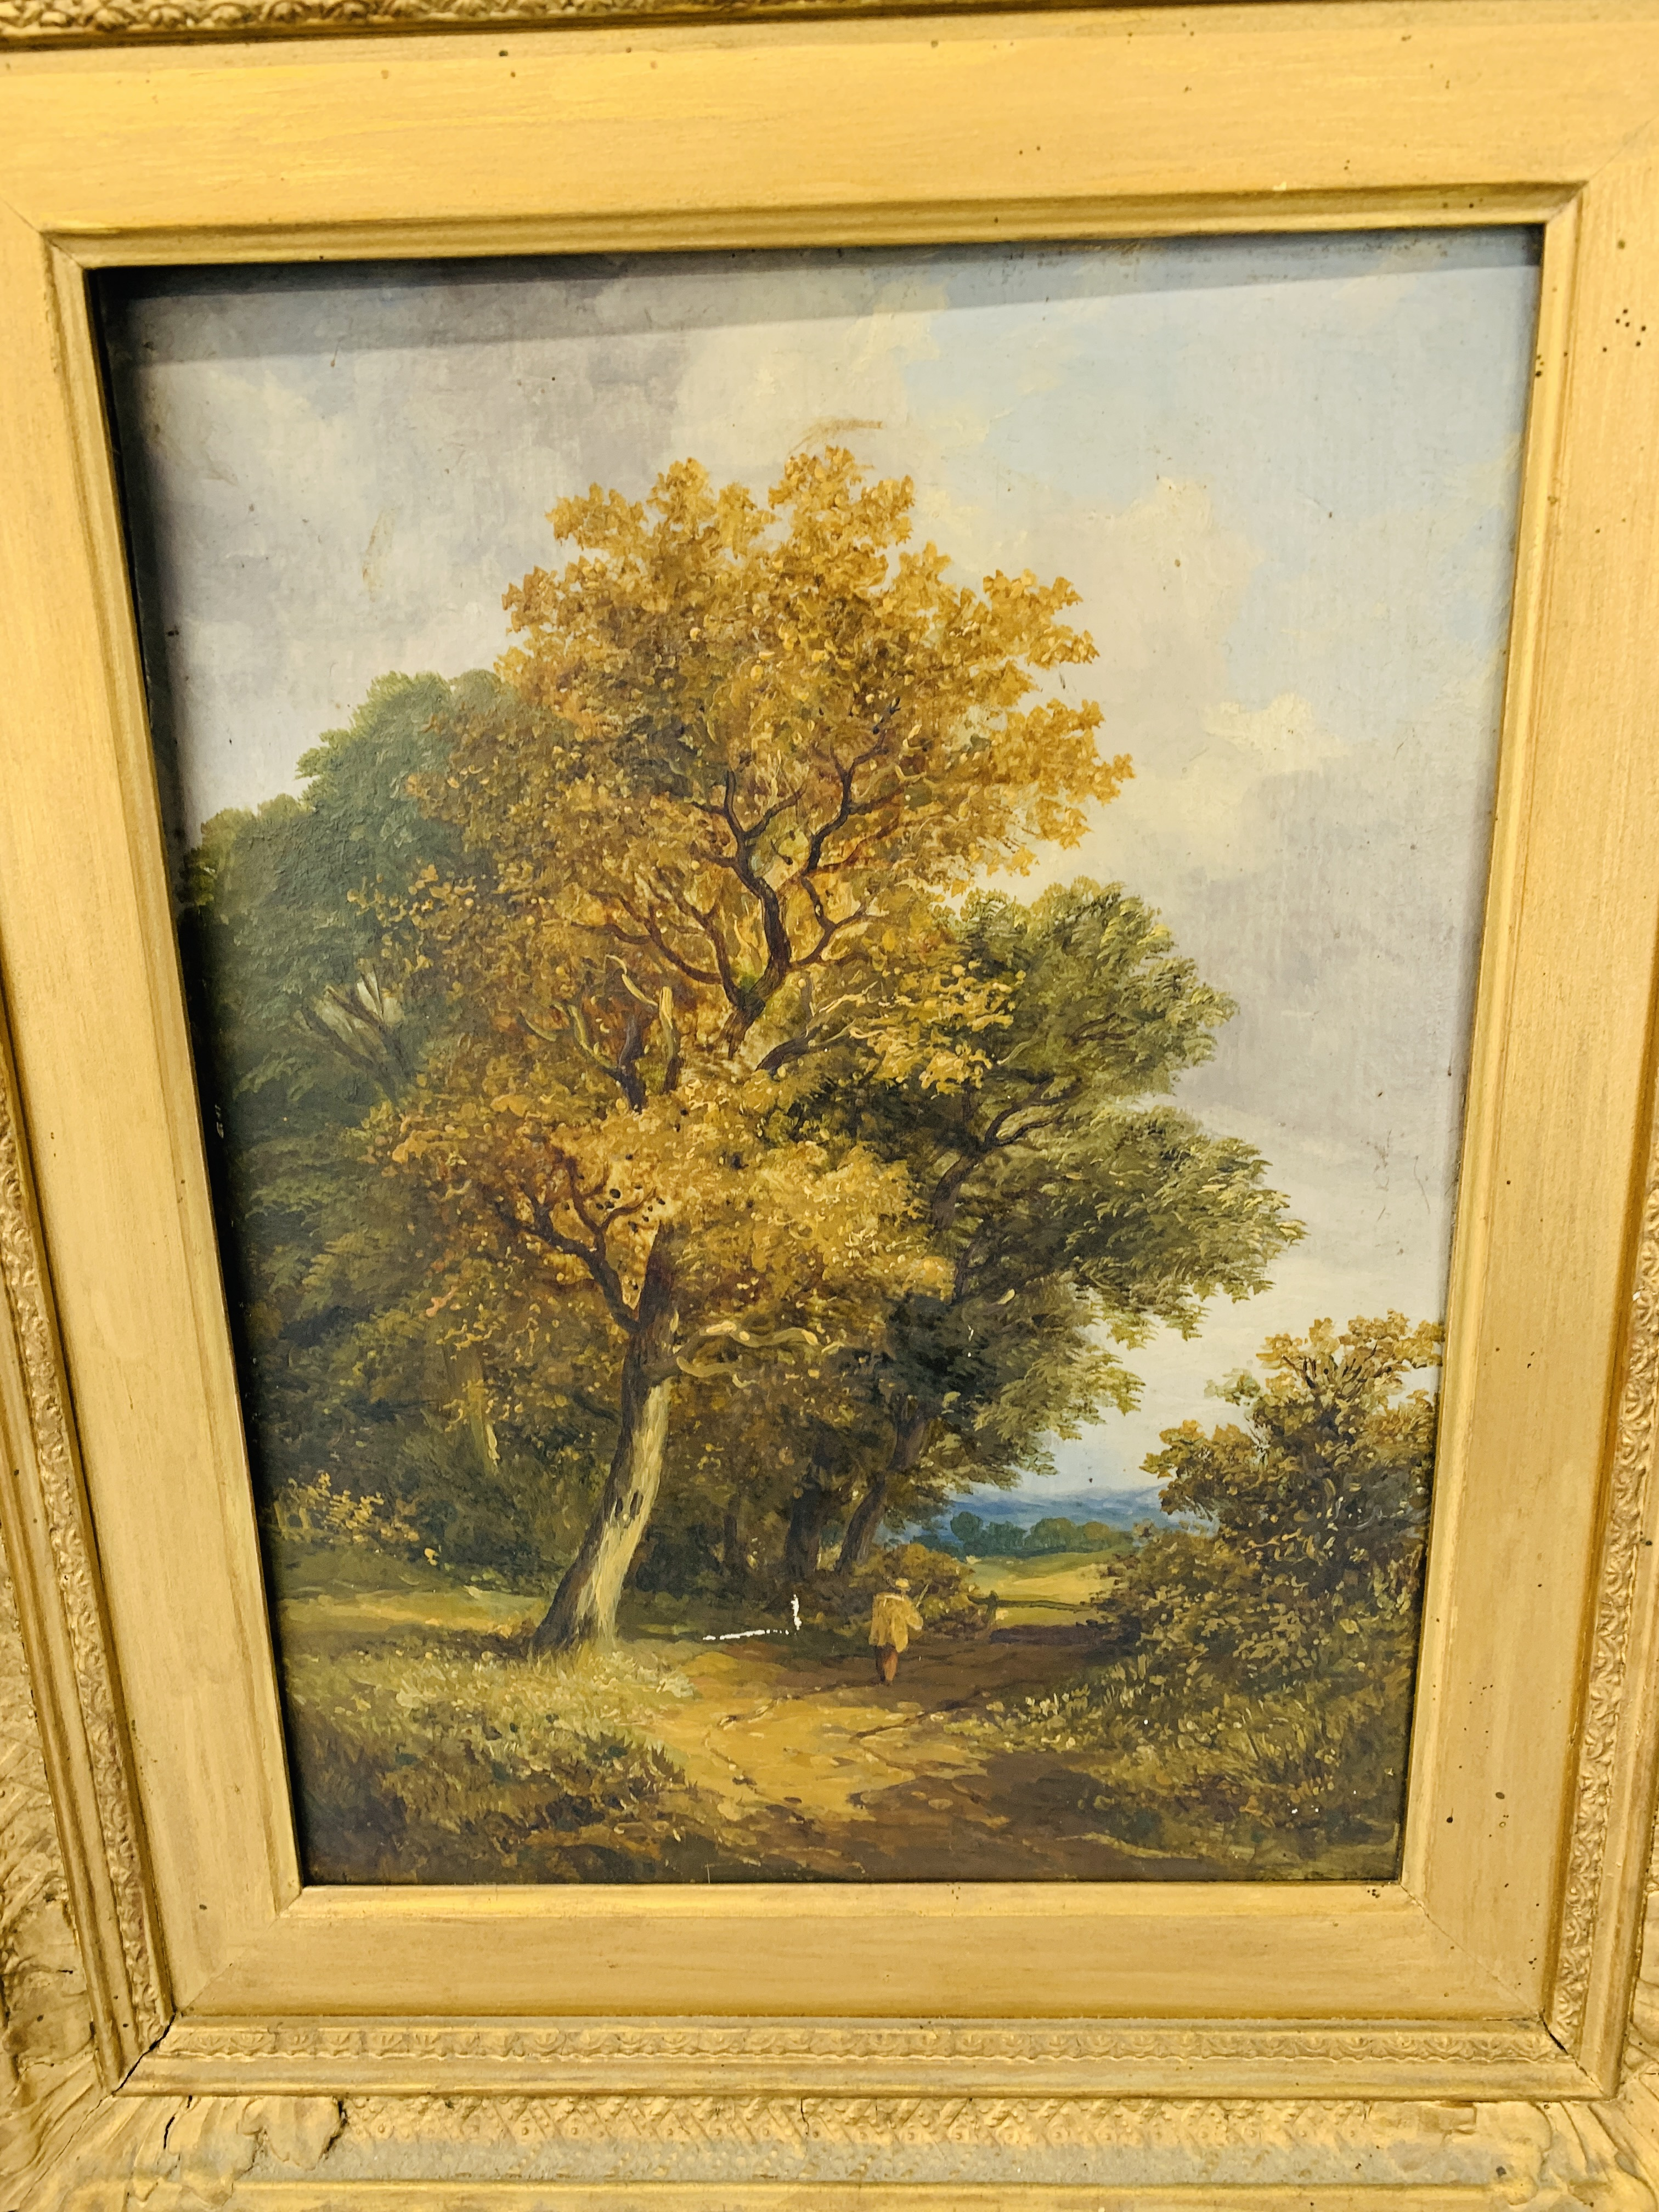 ATTRIBUTED TO OBADIAH SHORT OIL ON BOARD 32 X 24CM A FIGURE BY AN OAK TREE - Image 2 of 3